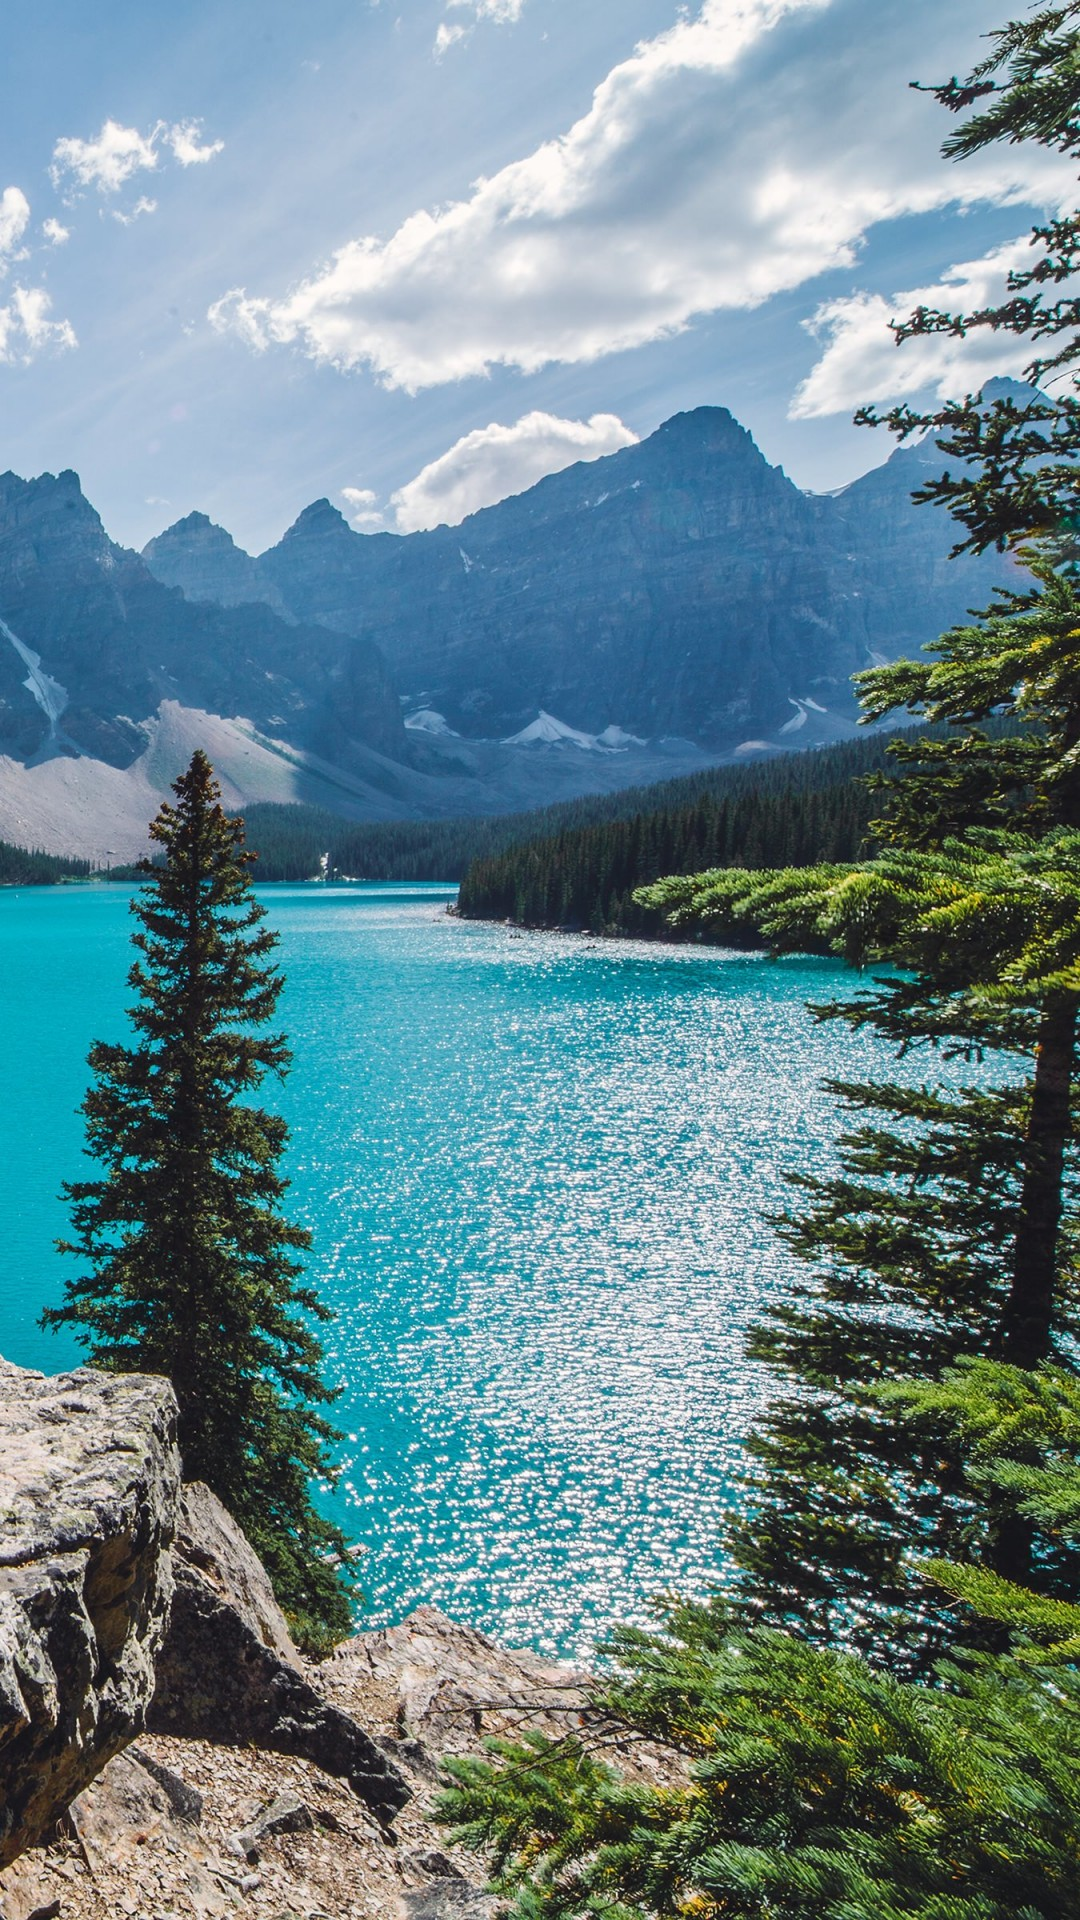 Sunny day over Moraine Lake Wallpaper for SAMSUNG Galaxy S5